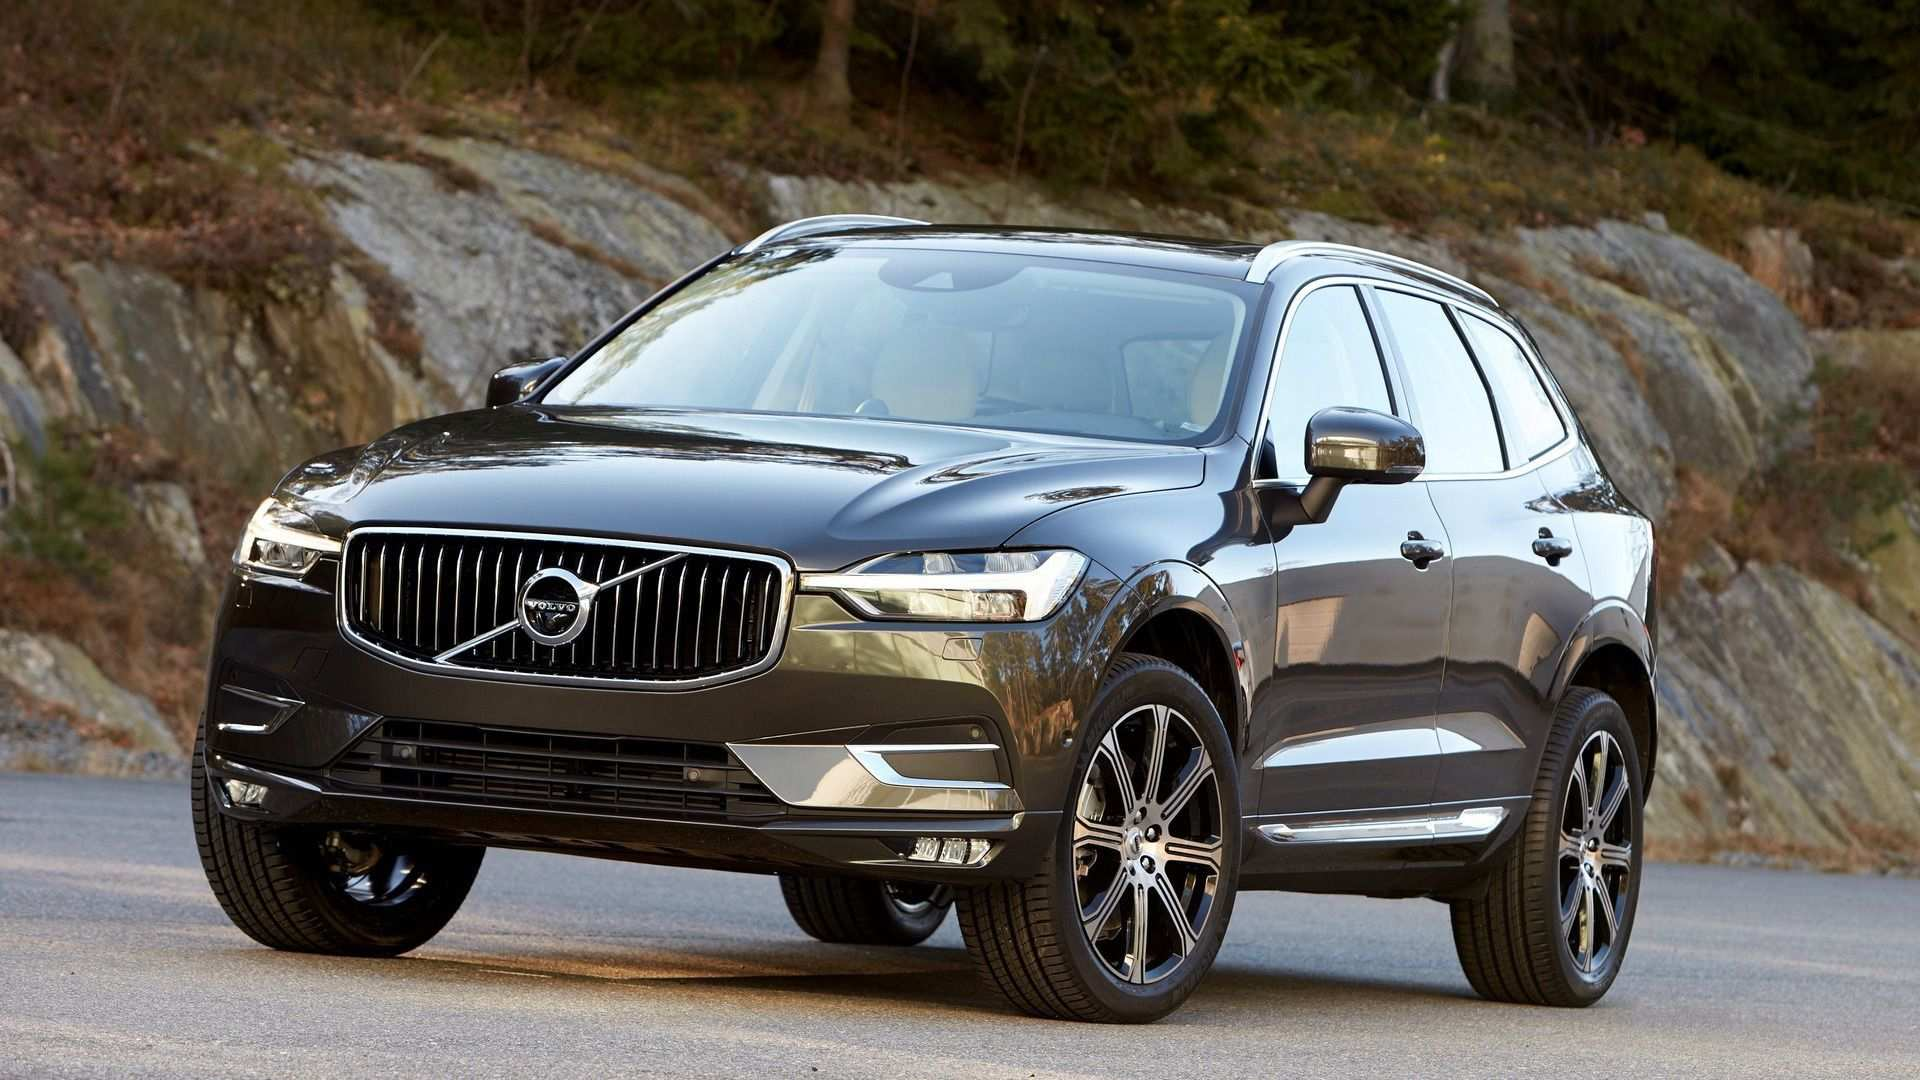 58 A Volvo Xc60 2019 Osmium Grey Release Date And Concept